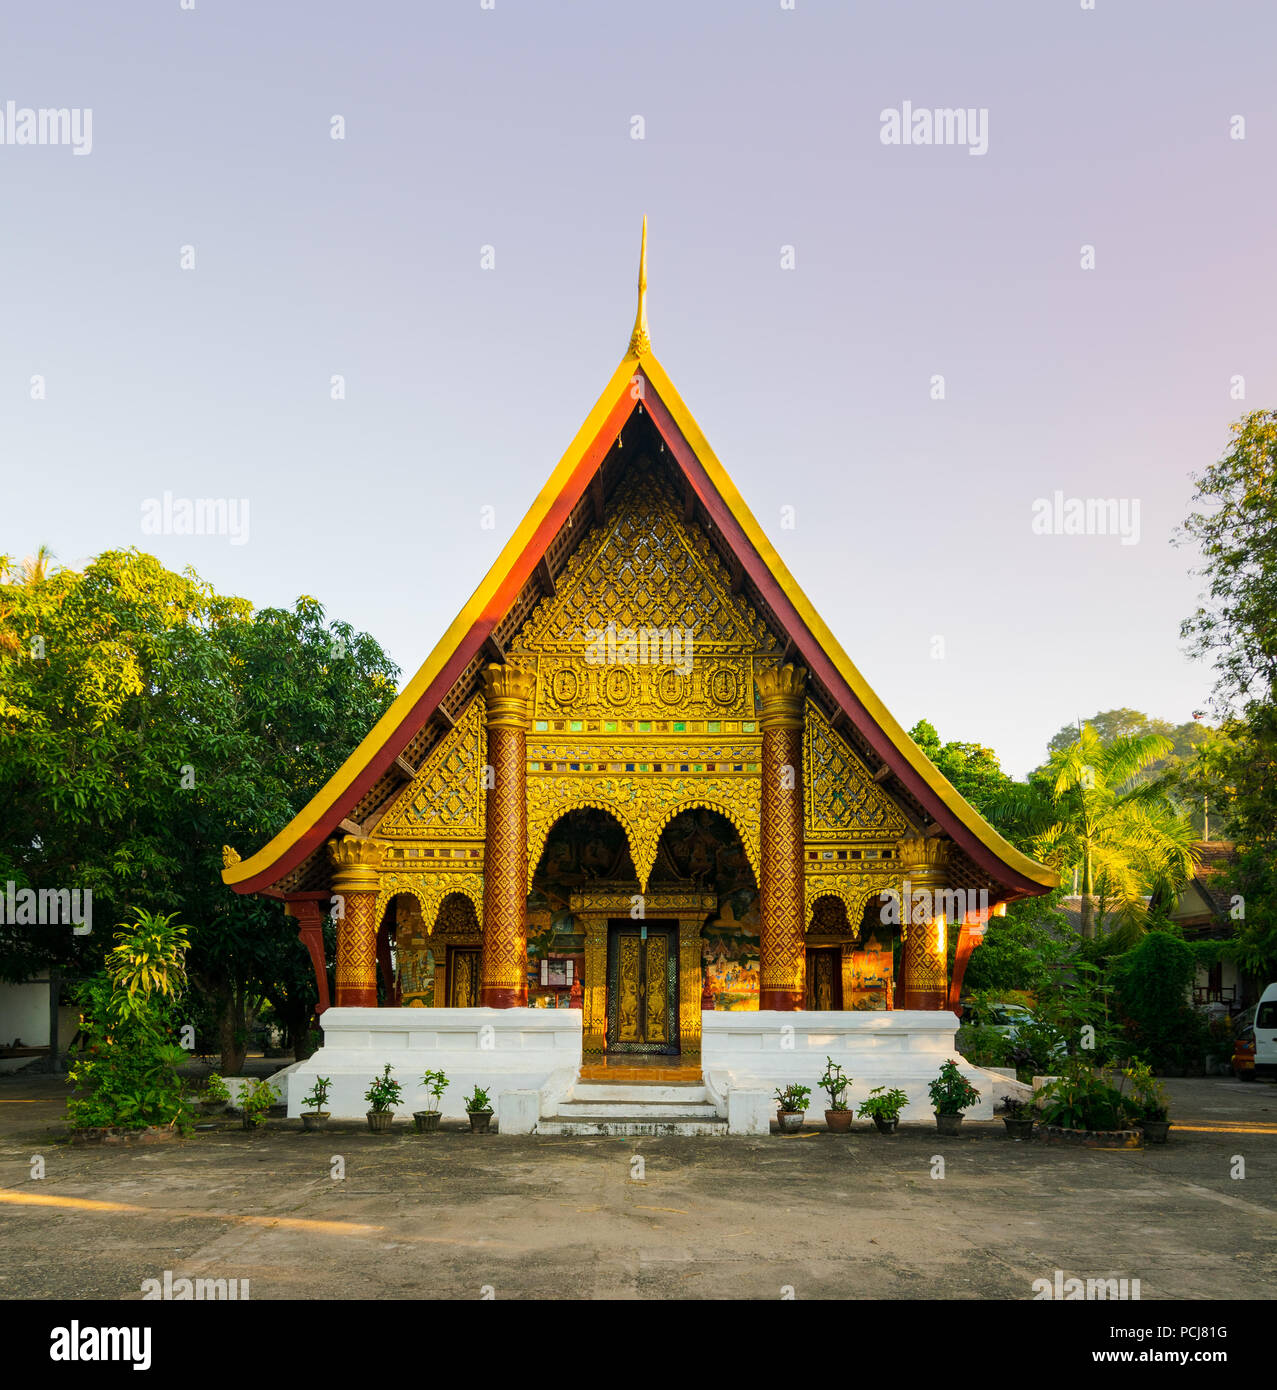 Buddhist temple with golden carved decorations and tiled roof in Vientiane, Laos - Stock Image